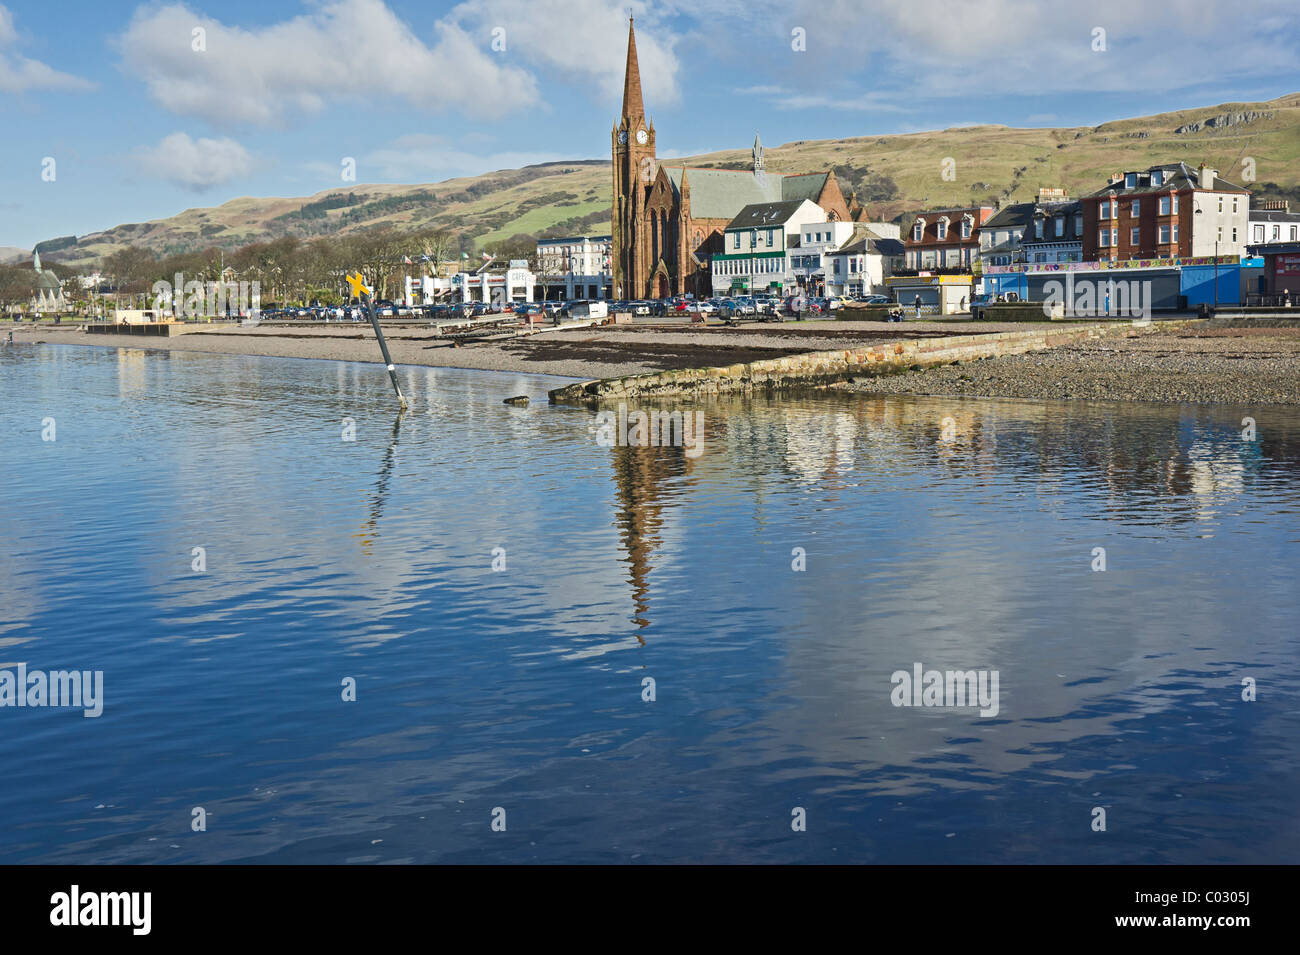 Sea frontage of seaside resort Largs in North Ayrshire Scotland on a sunny February day - Stock Image